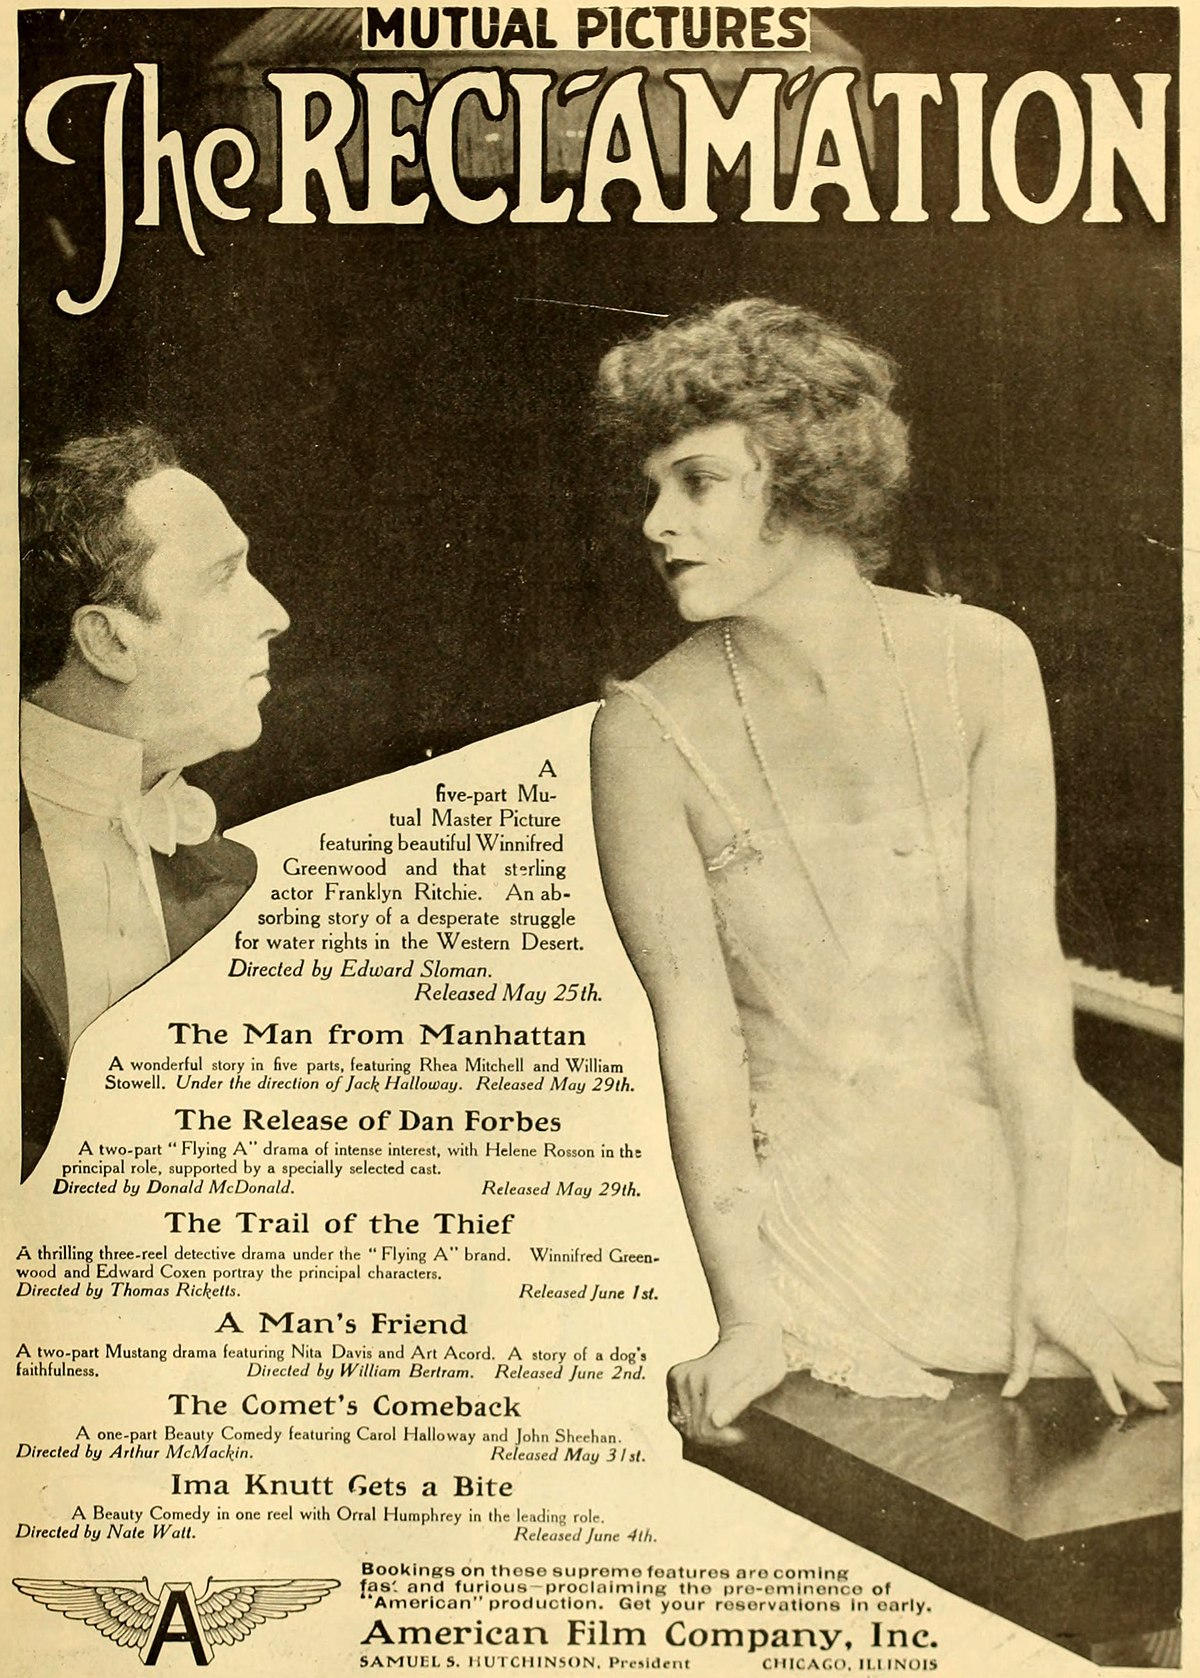 Soviet melodrama Come Tomorrow. Actors and roles